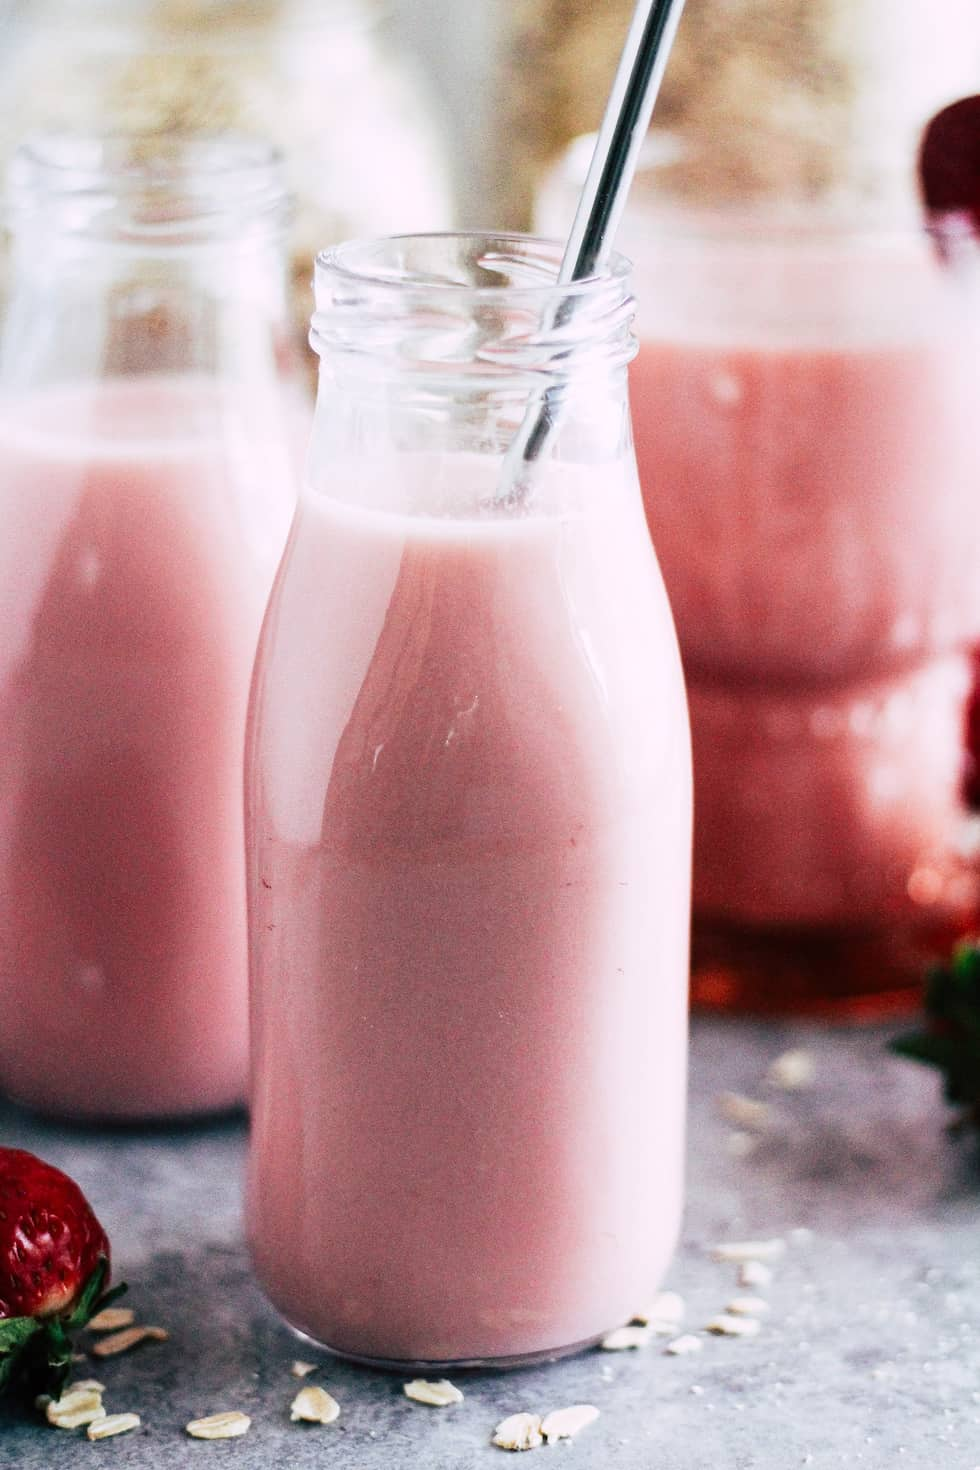 Milk jar filled with strawberry oat milk with a stainless steel straw.